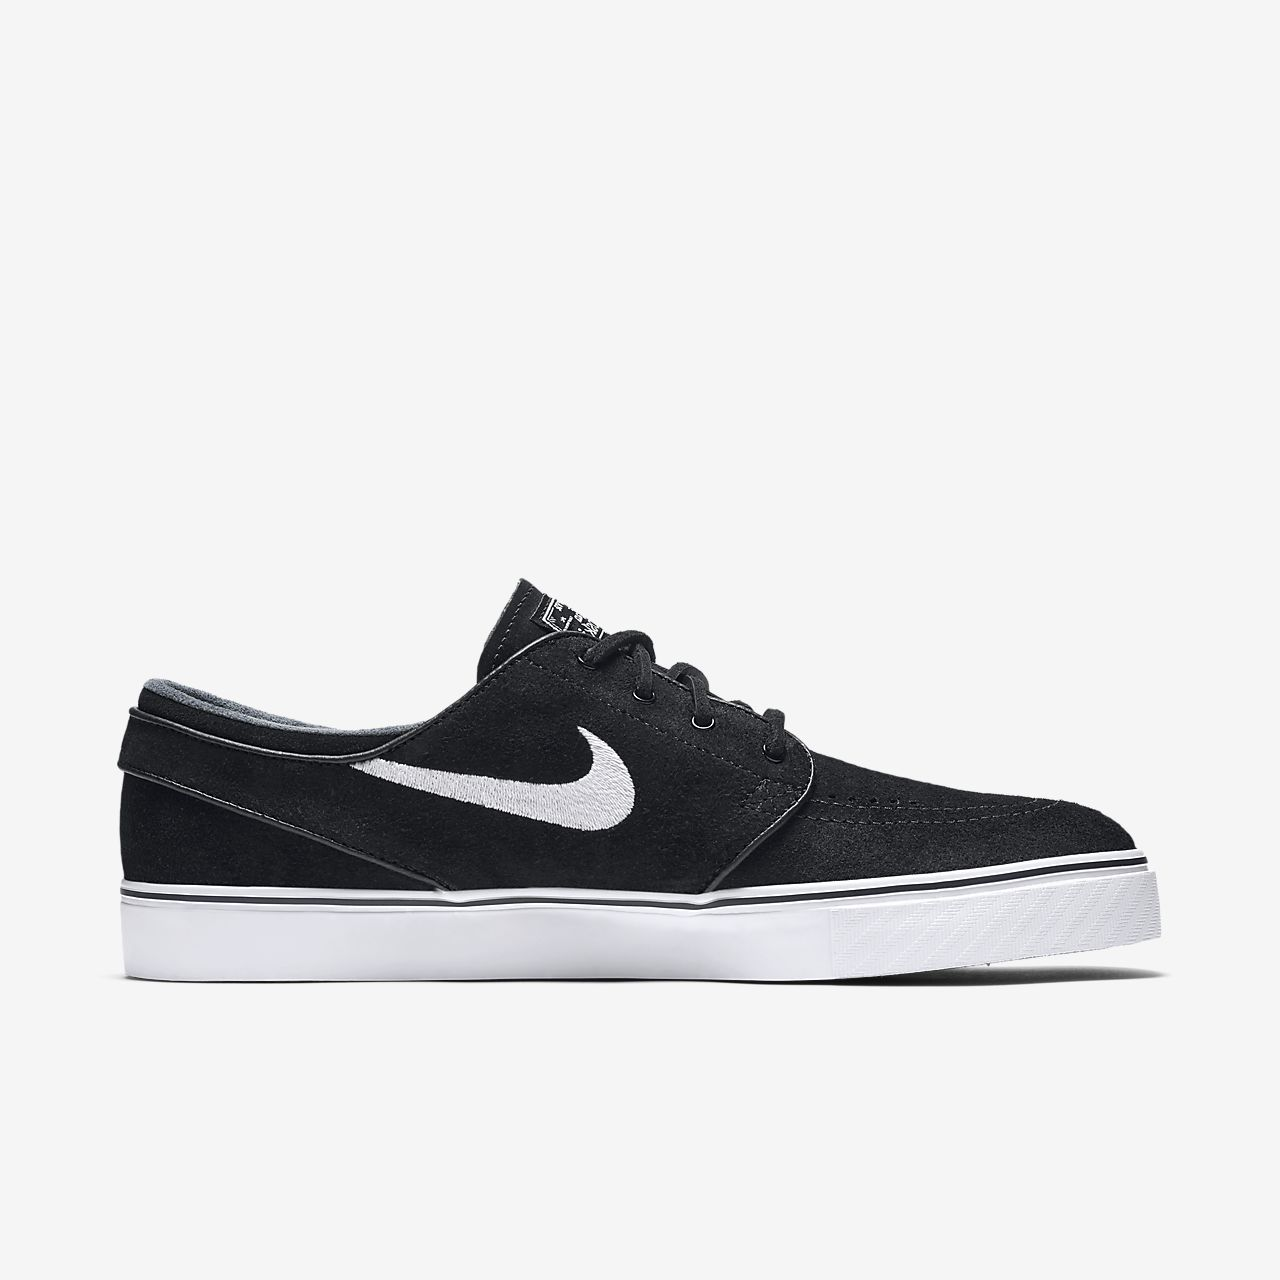 Nike SB Zoom Stefan Janoski OG Men's Skateboarding Shoes Black/Brown/White aU8141W